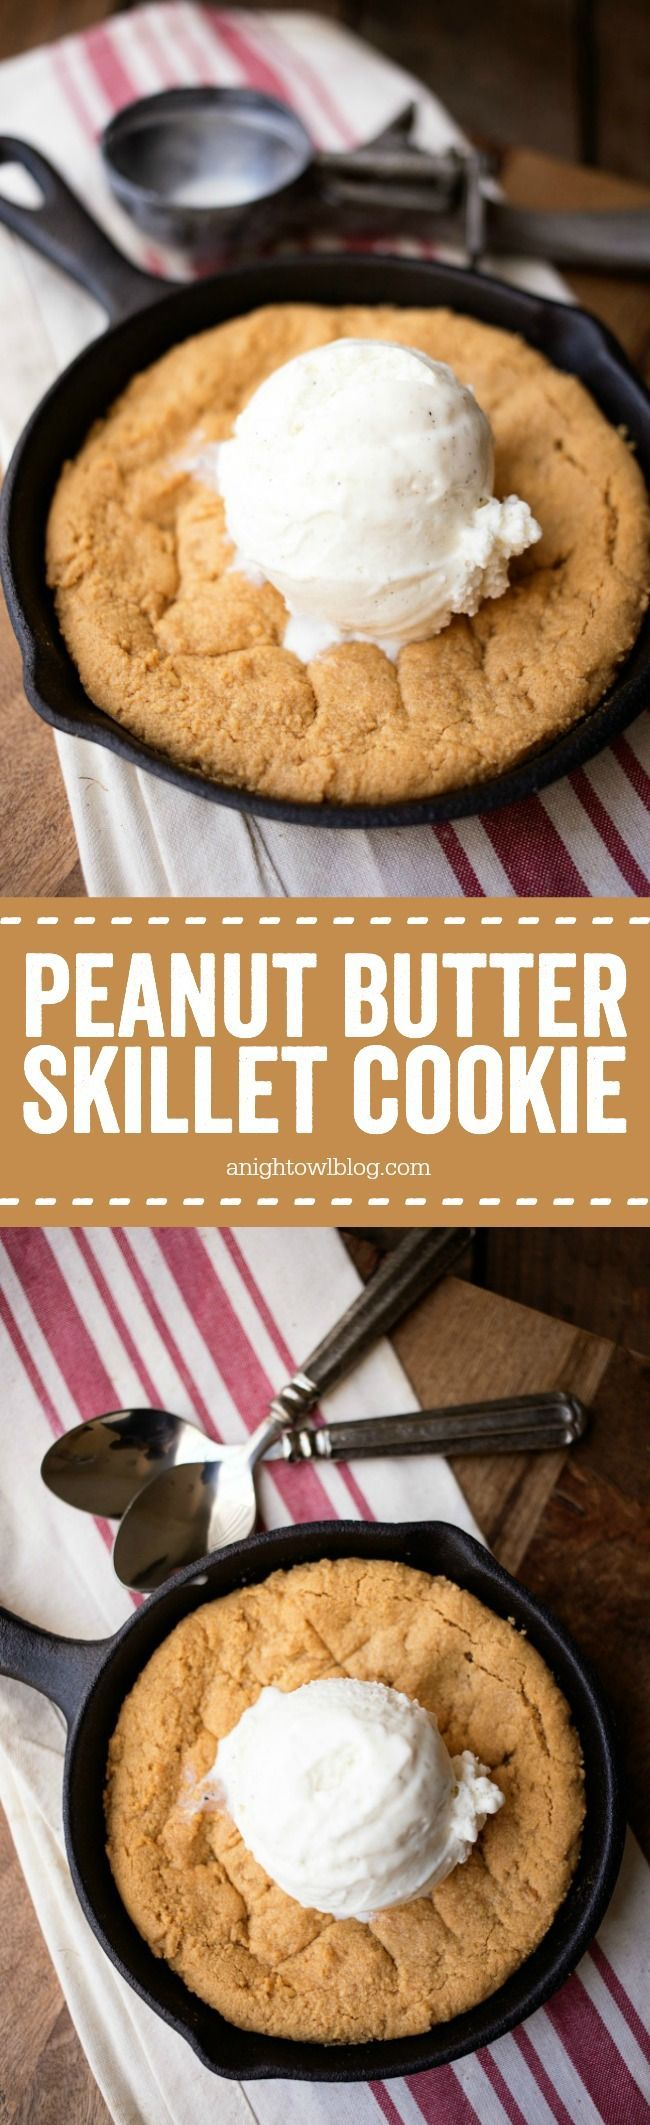 This Peanut Butter Skillet Cookie is easy to whip up and absolutely delicious served warm and topped with ice cream! #WorldMarketTribe